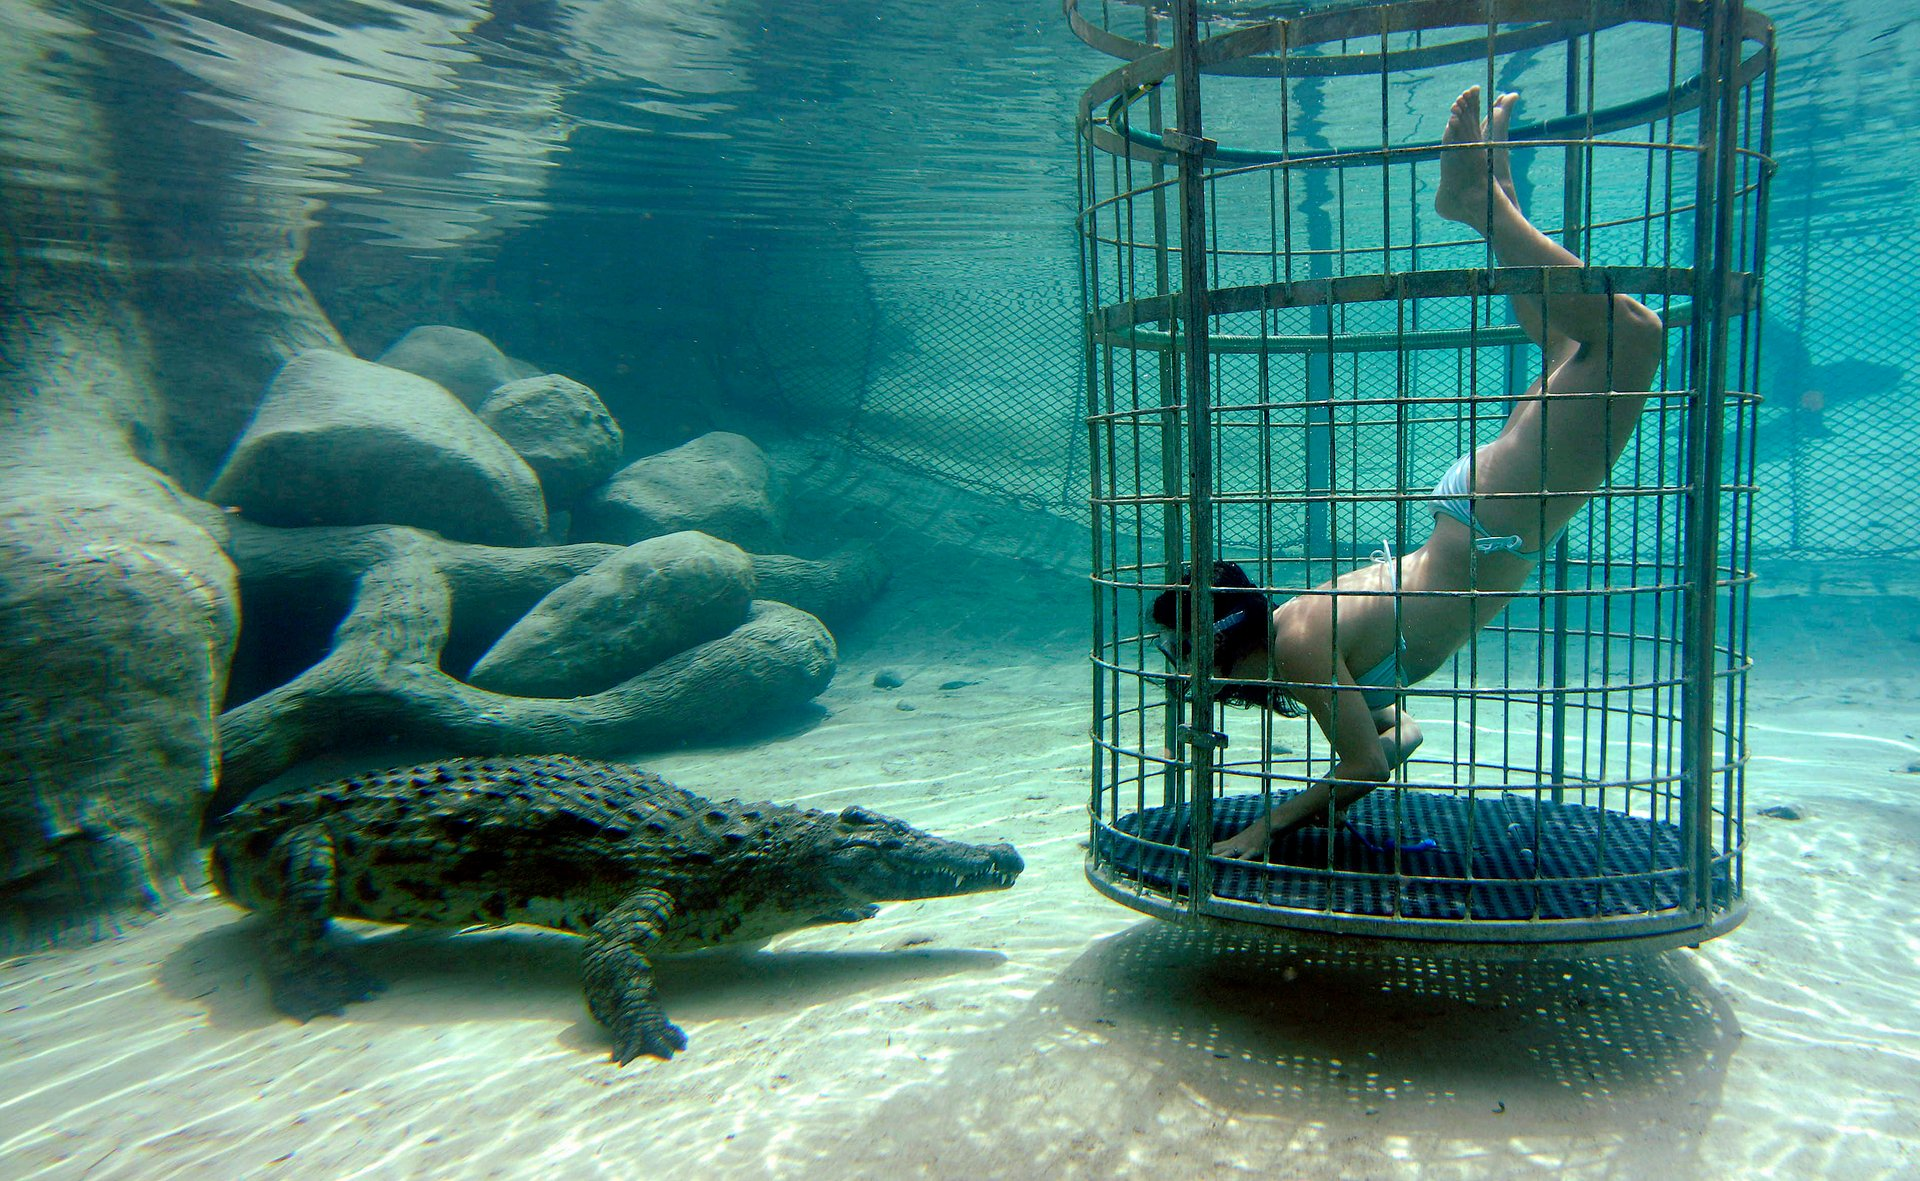 Croc Cage Diving in South Africa 2020 - Best Time